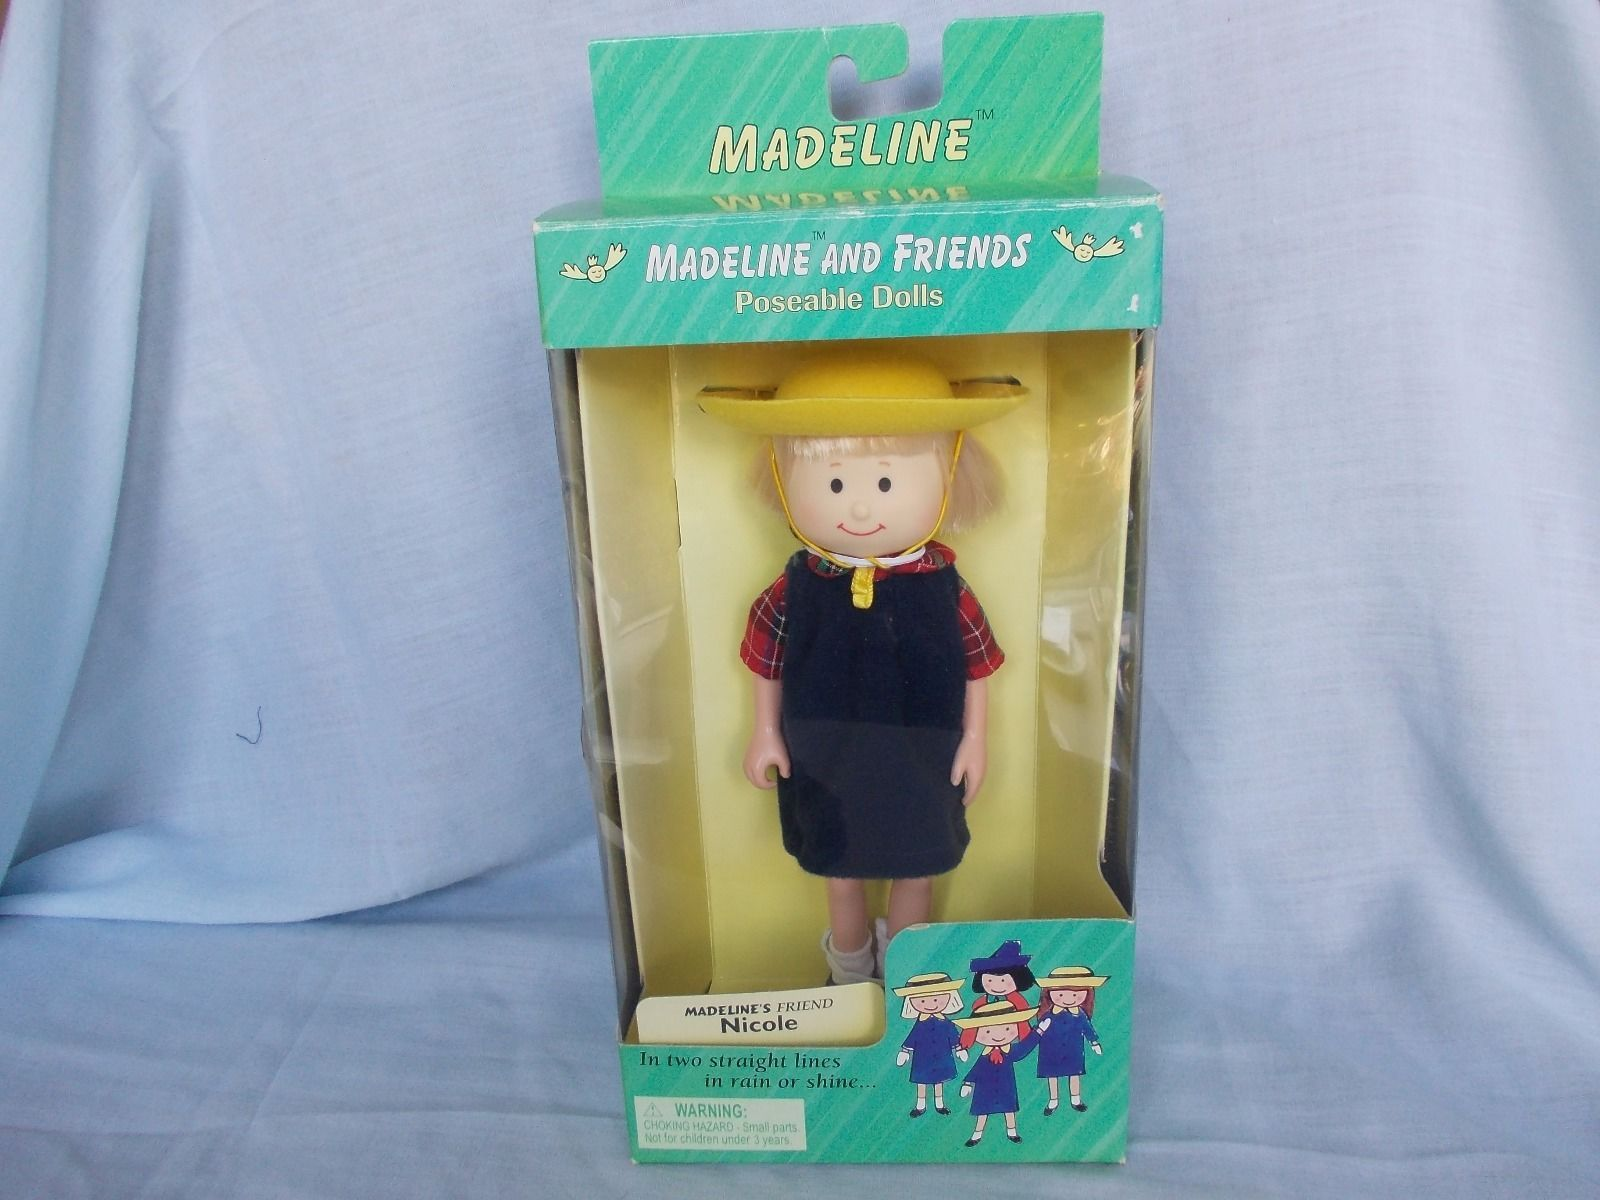 VINTAGE MADELINE DOLL FRIEND NICOLE POSEABLE DOLL BOXED IN GOOD CLEAN CONDITION